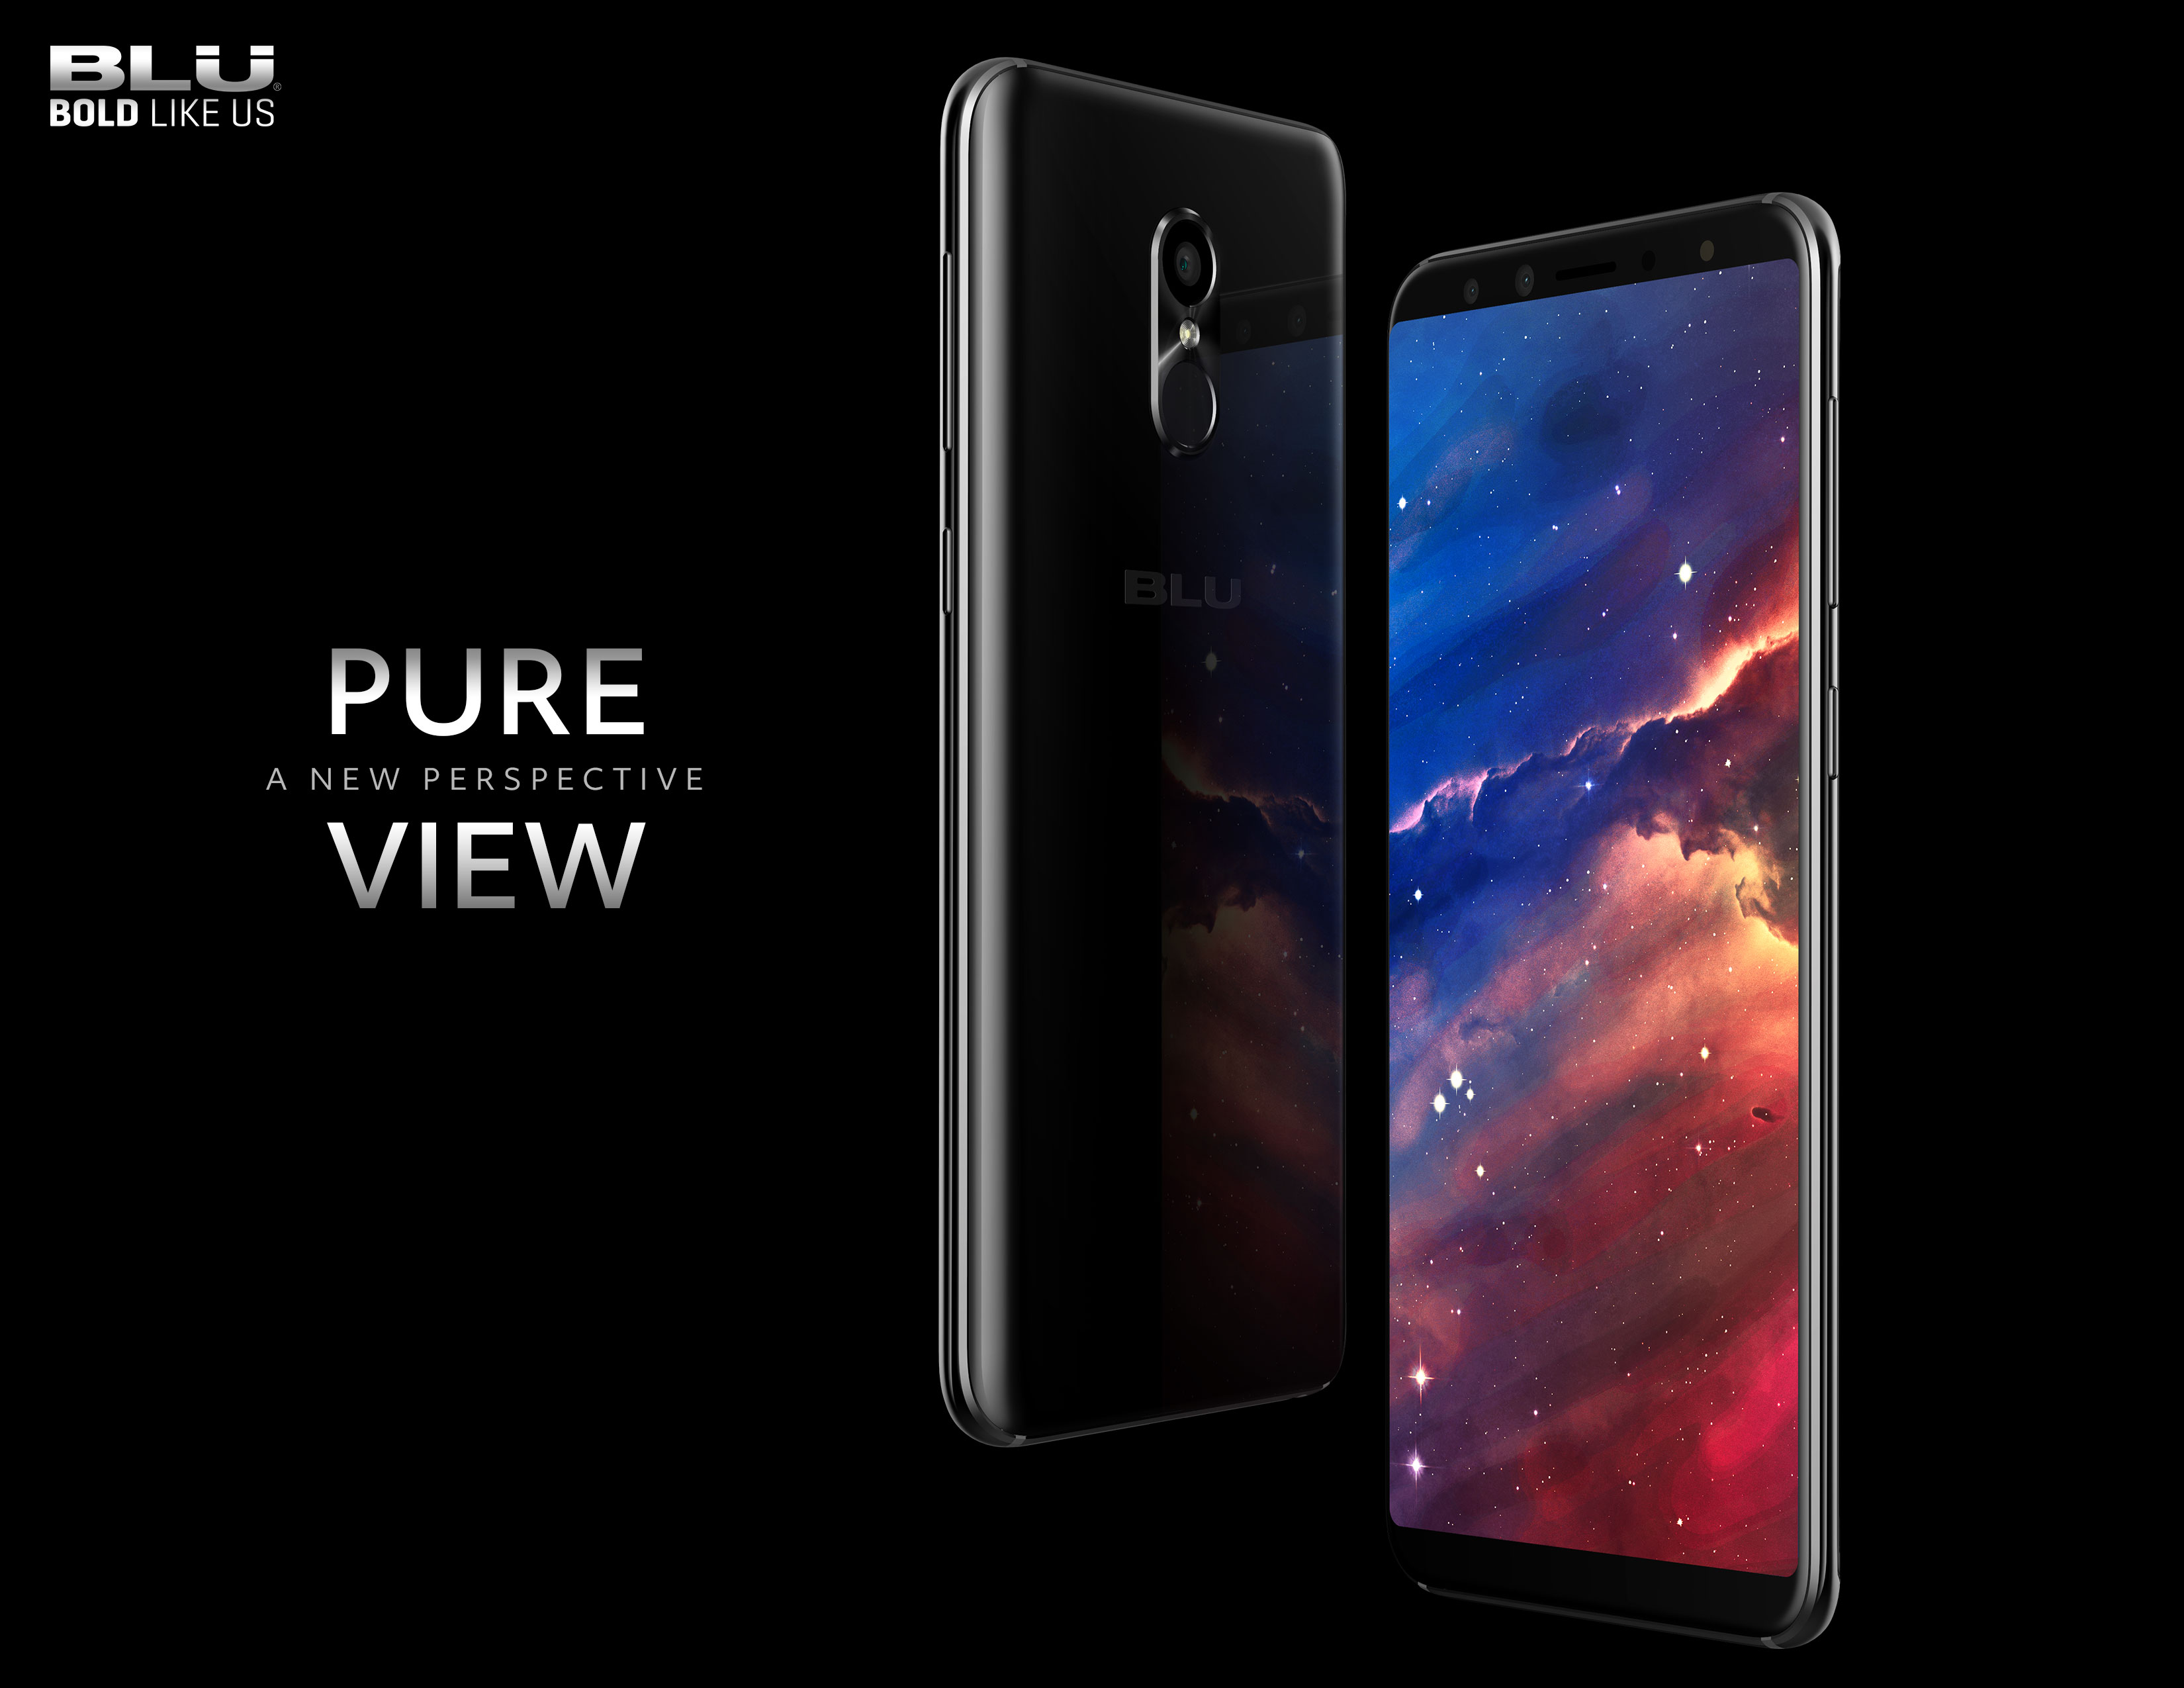 blu products announces its